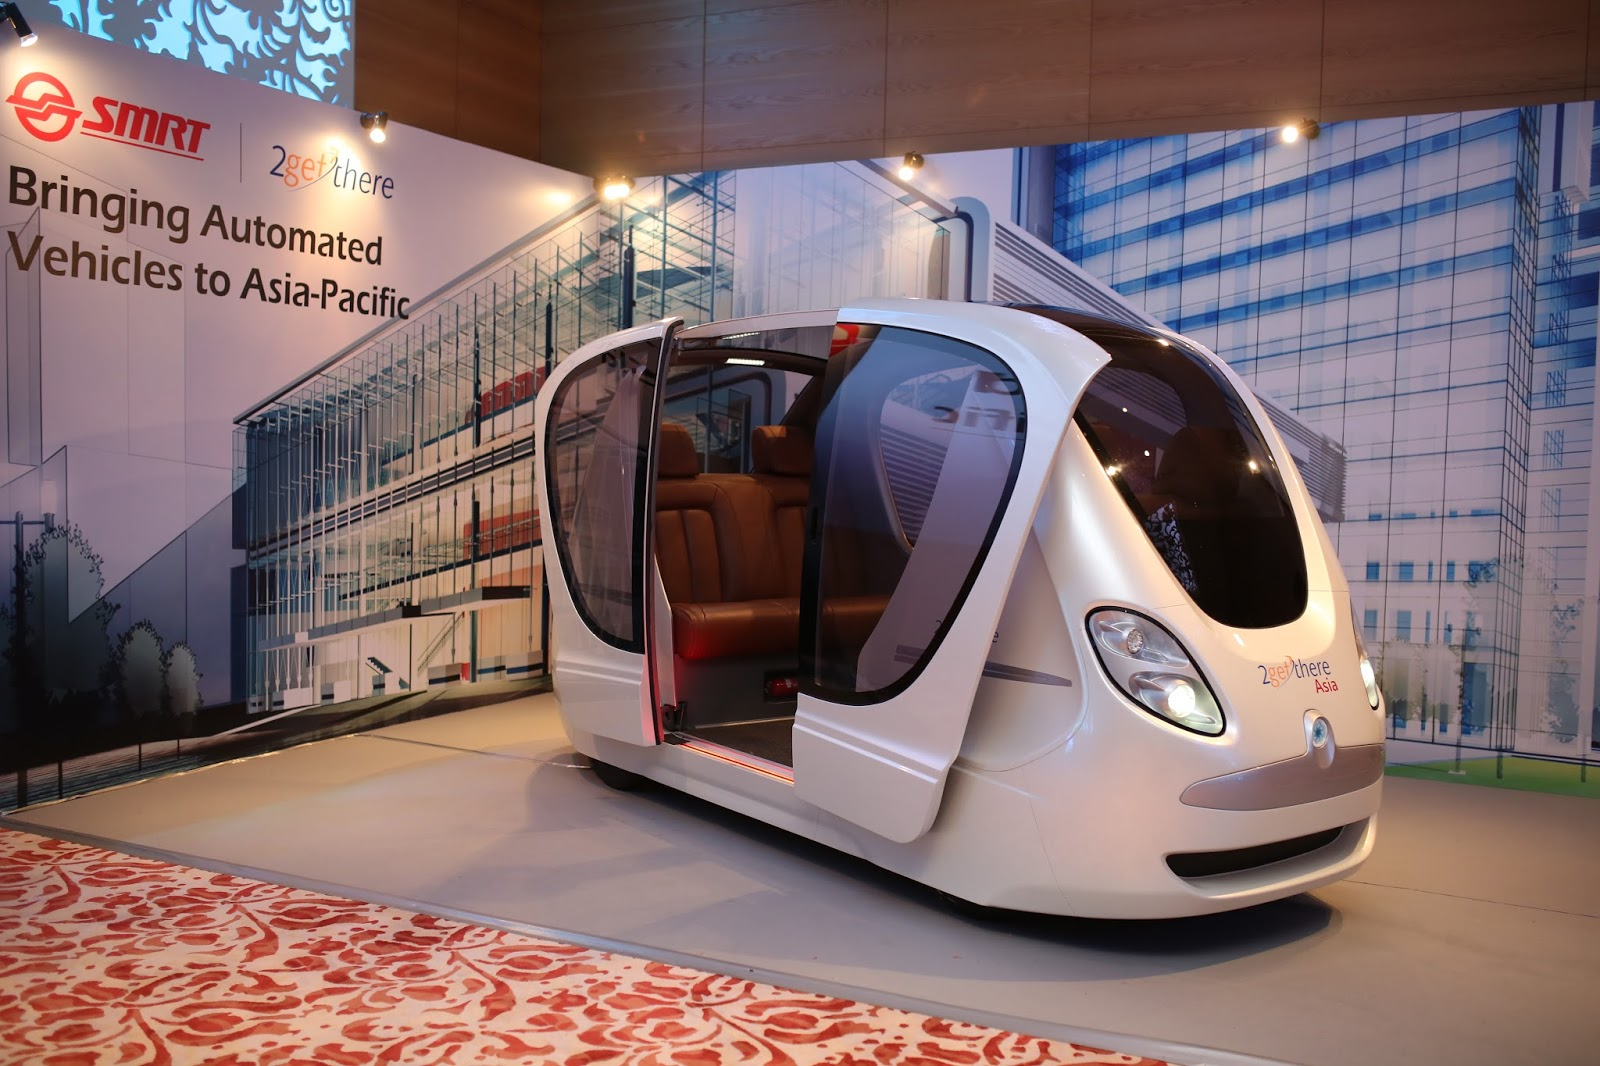 Driverless vehicle will be available in Singapore by end of 2016